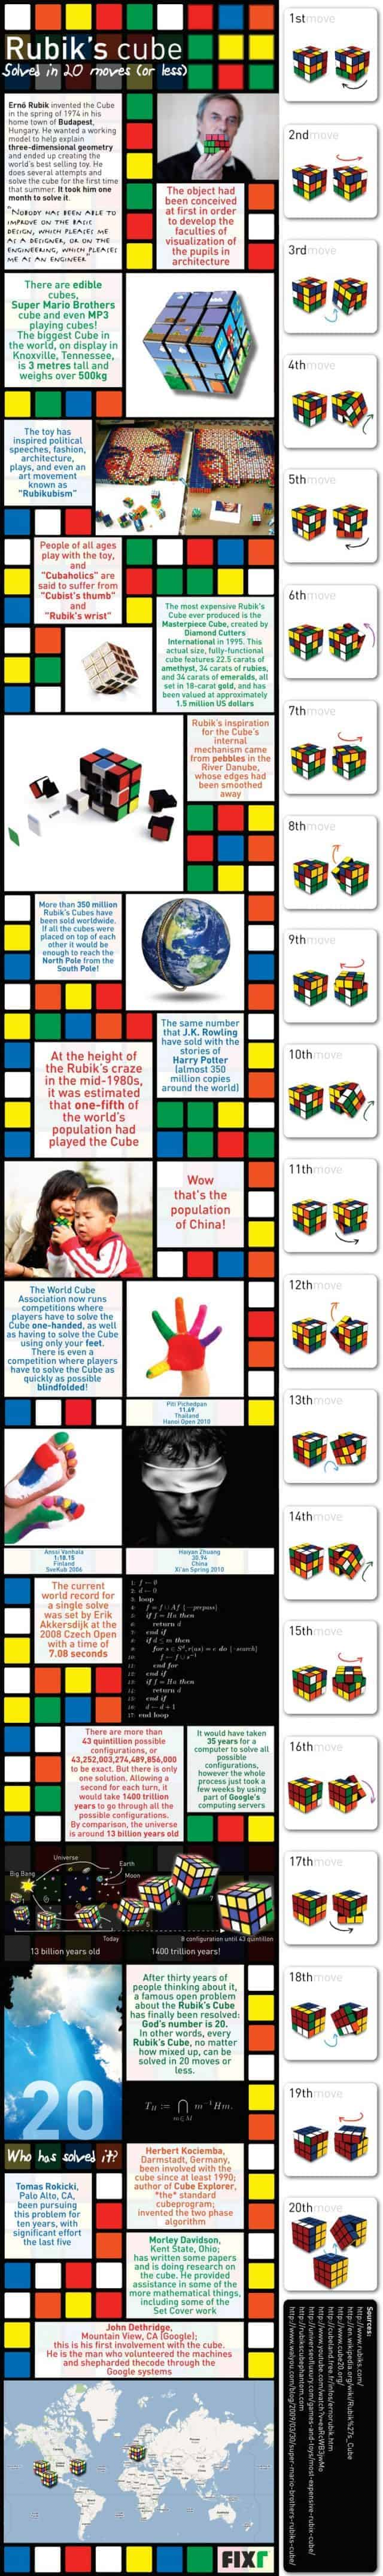 Rubik's Cube solved in 20 moves or less